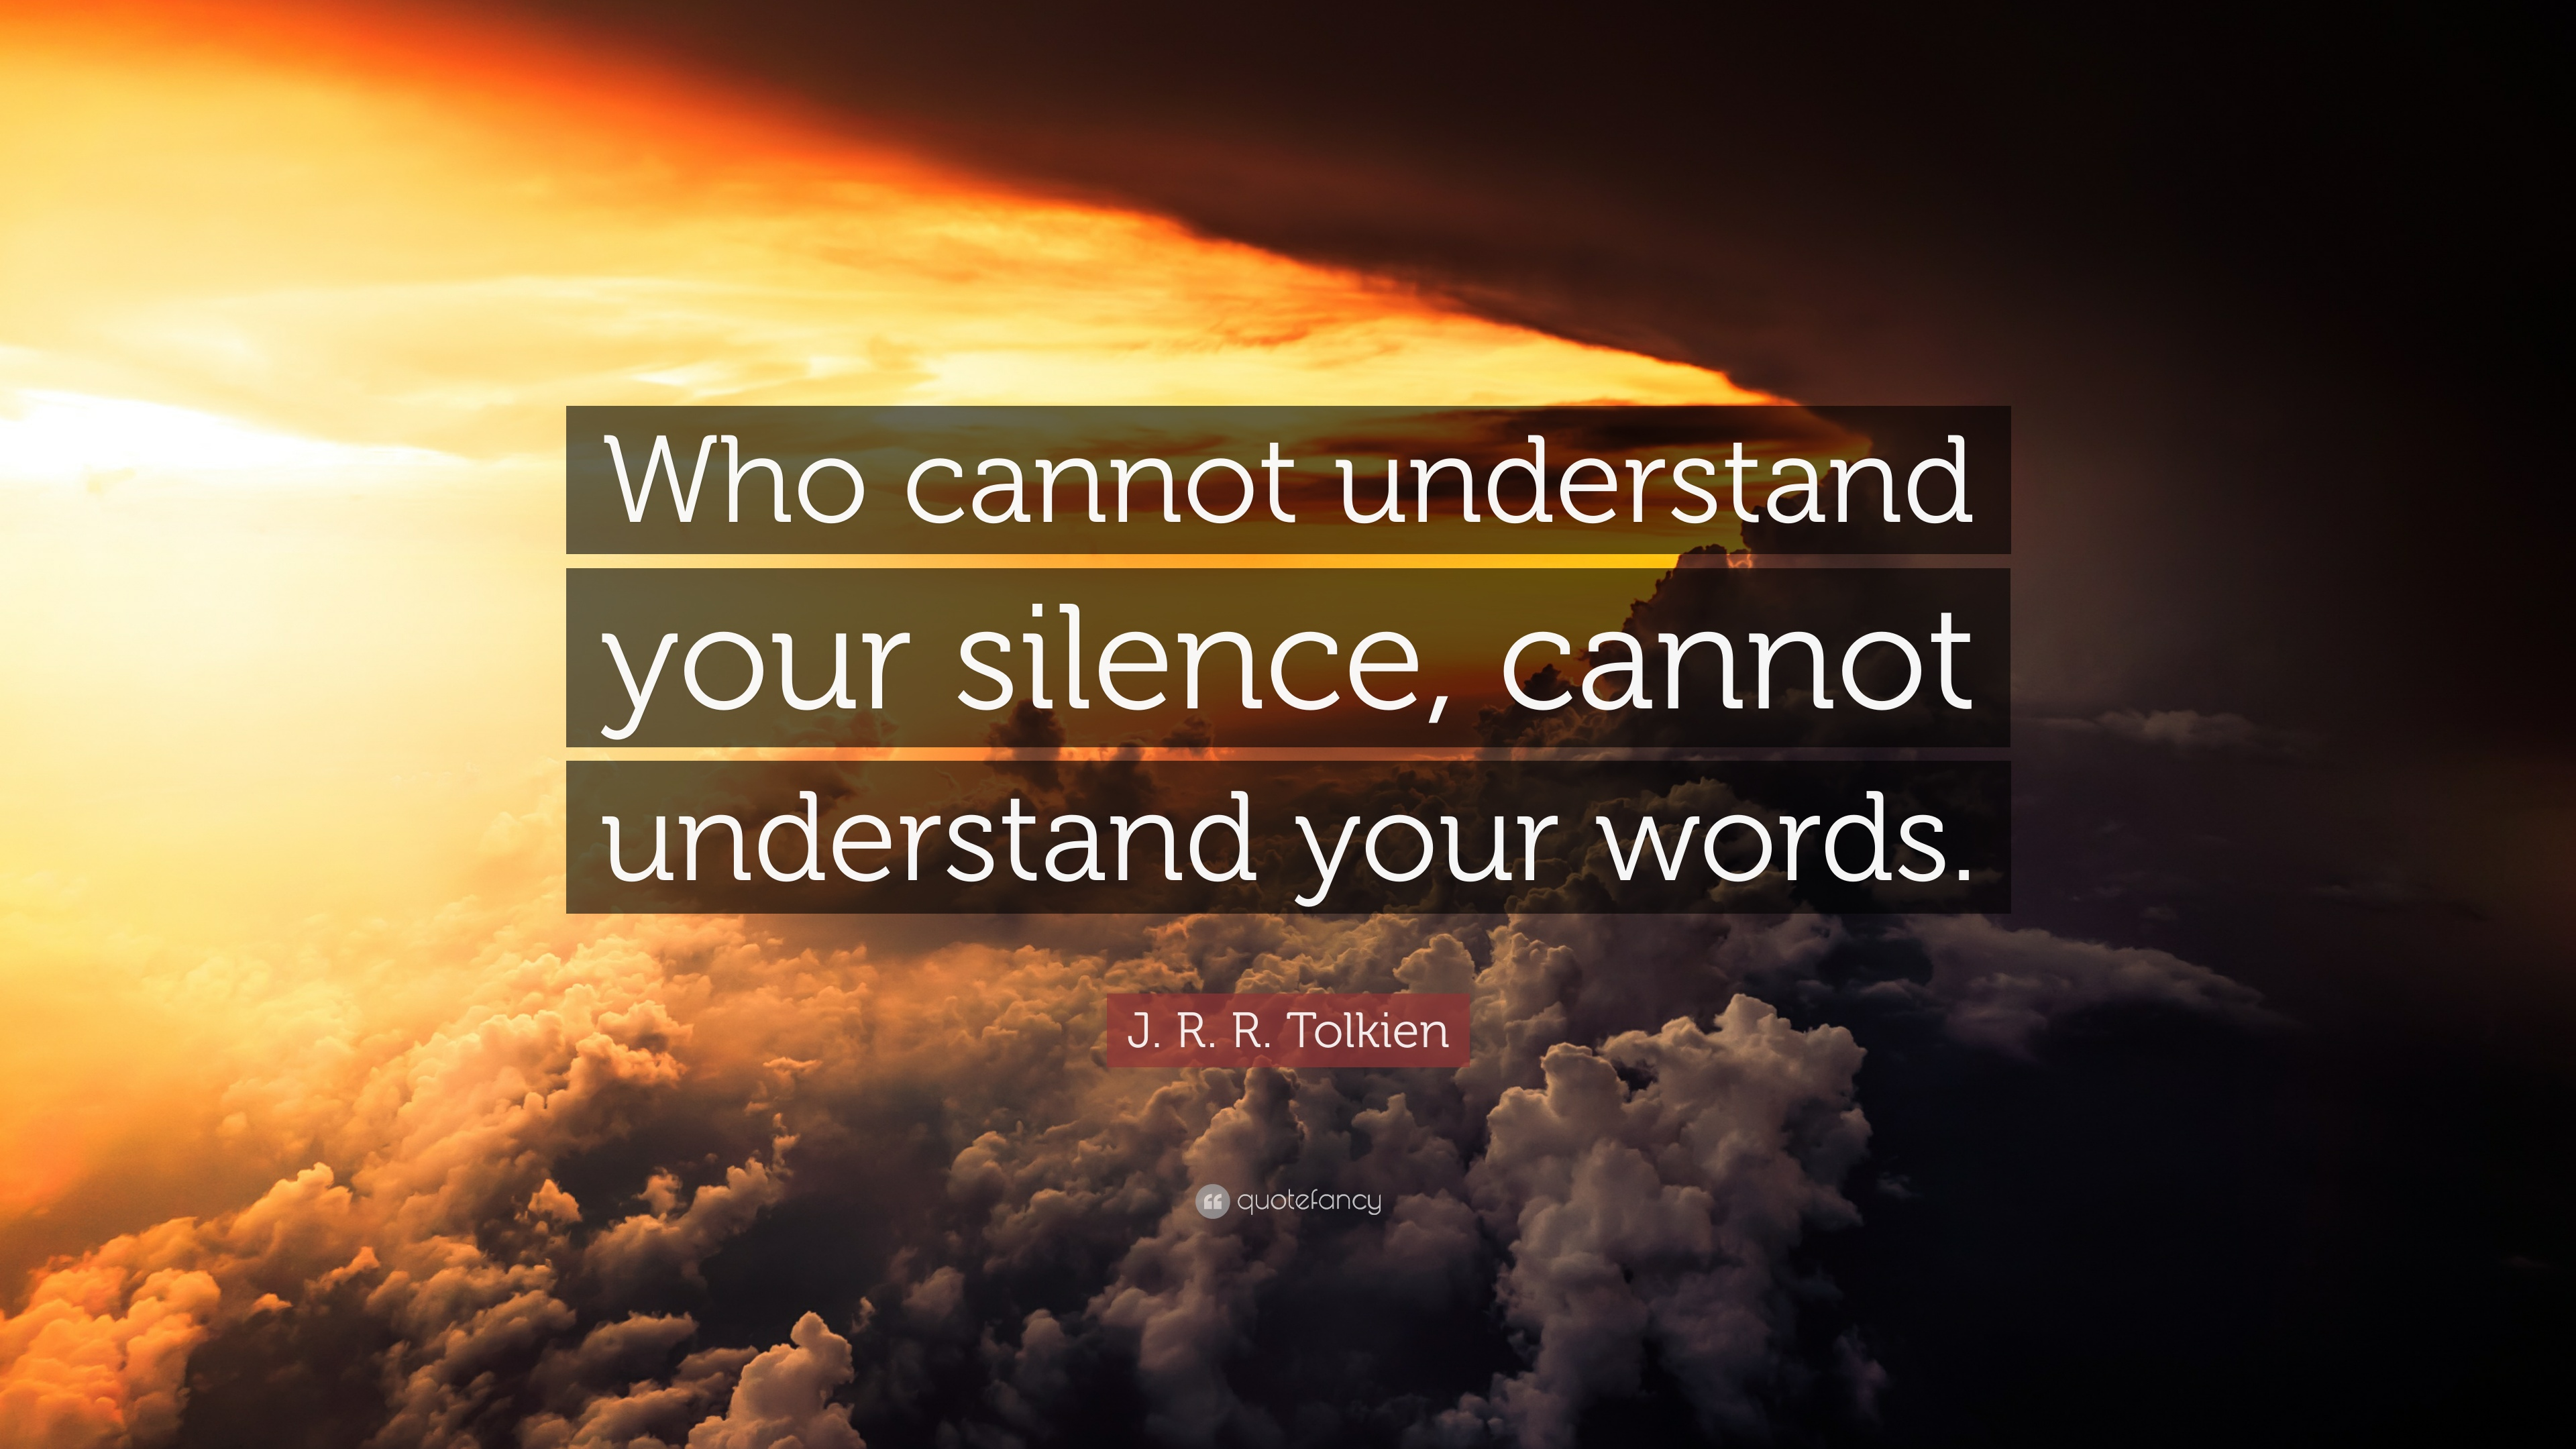 40 Wallpapers. Silence Quotes: U201cWho Cannot Understand Your Silence, Cannot  Understand Your Words.u201d